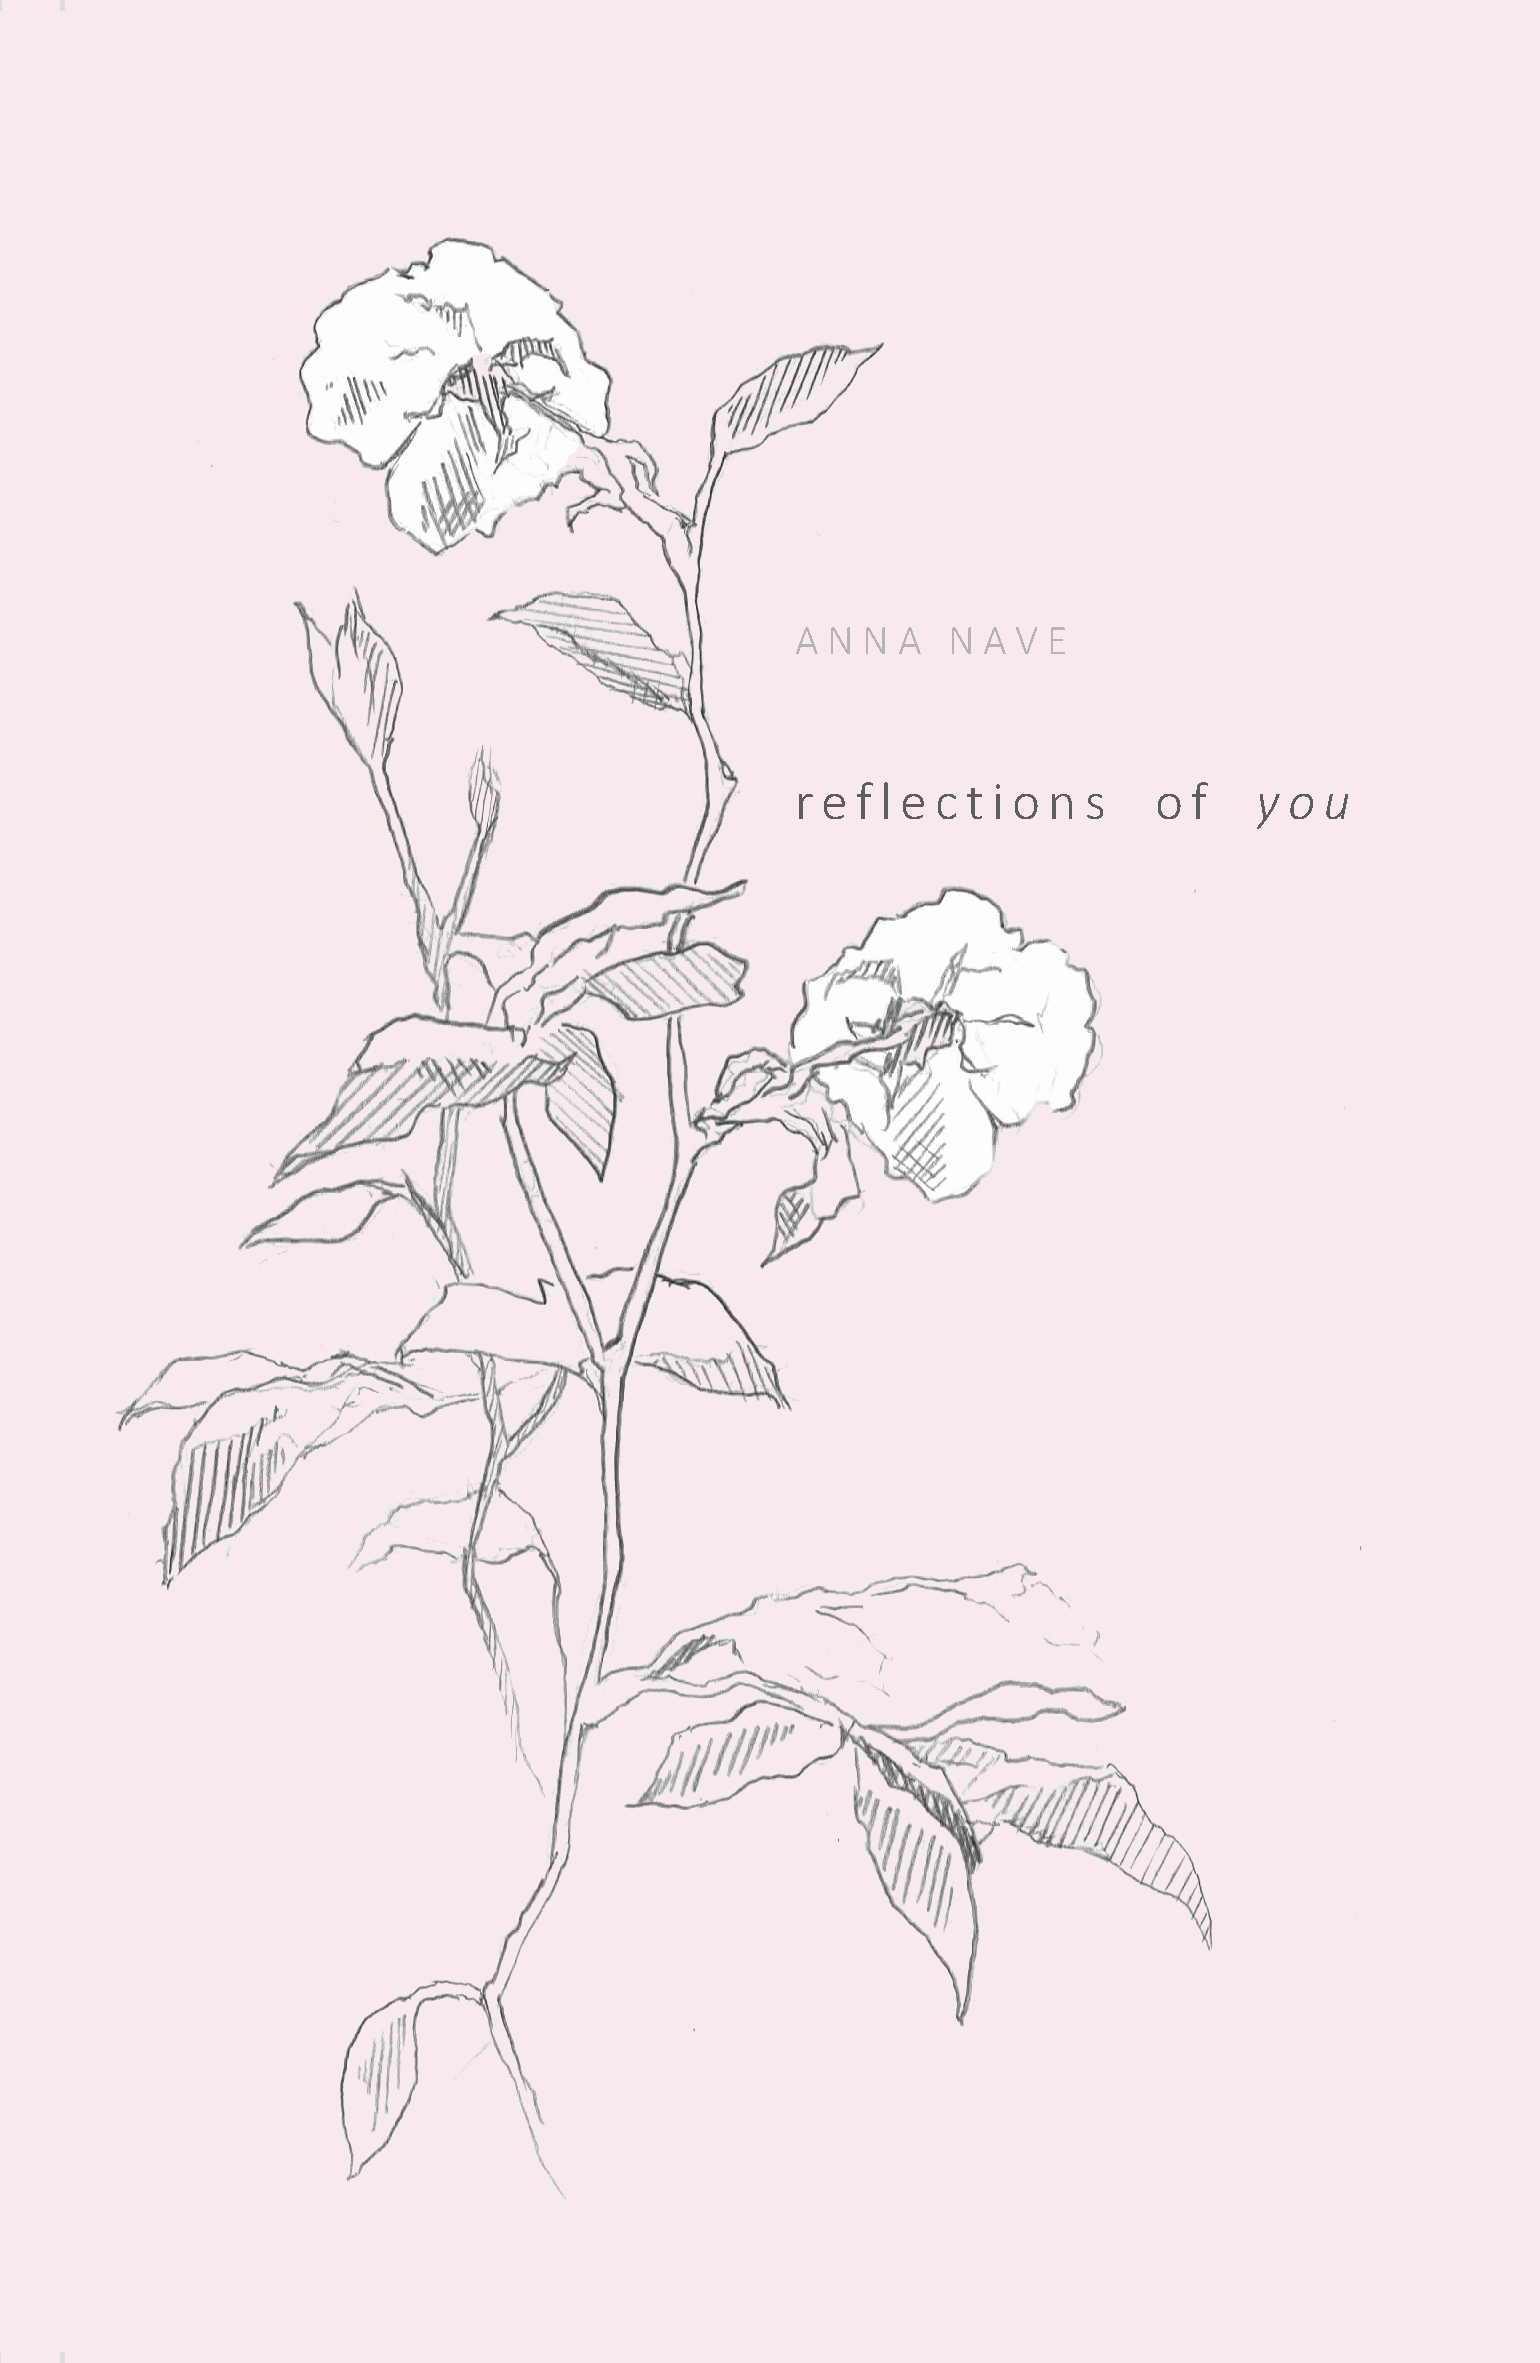 Buchcover von Reflectins of you. Rosa mit gezeichneter Blume darauf. Book cover of Reflections of You. Pastel pink with a drawing of a flower.